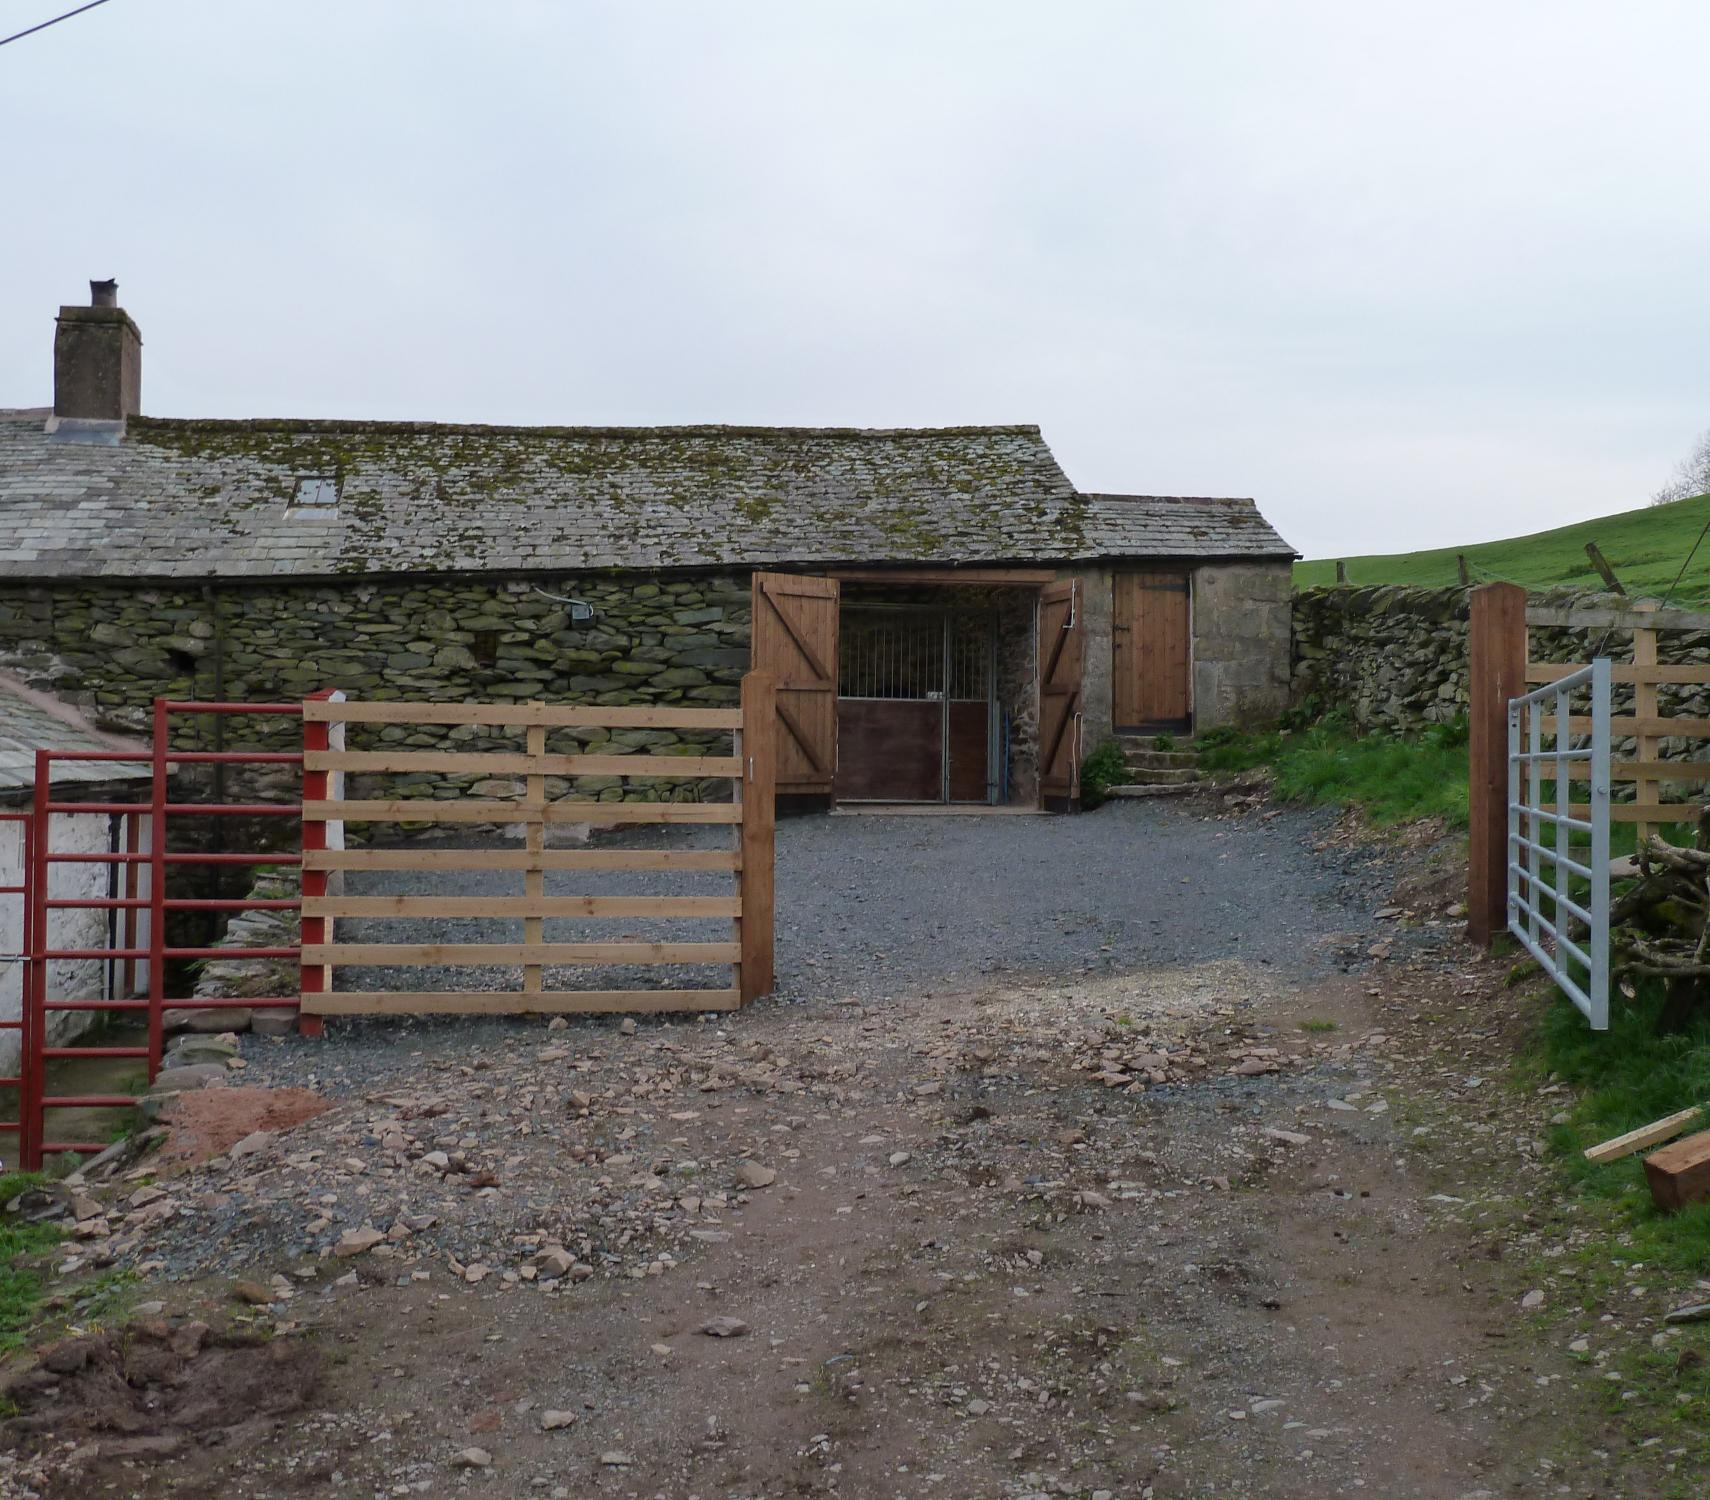 Scales Farm Stable